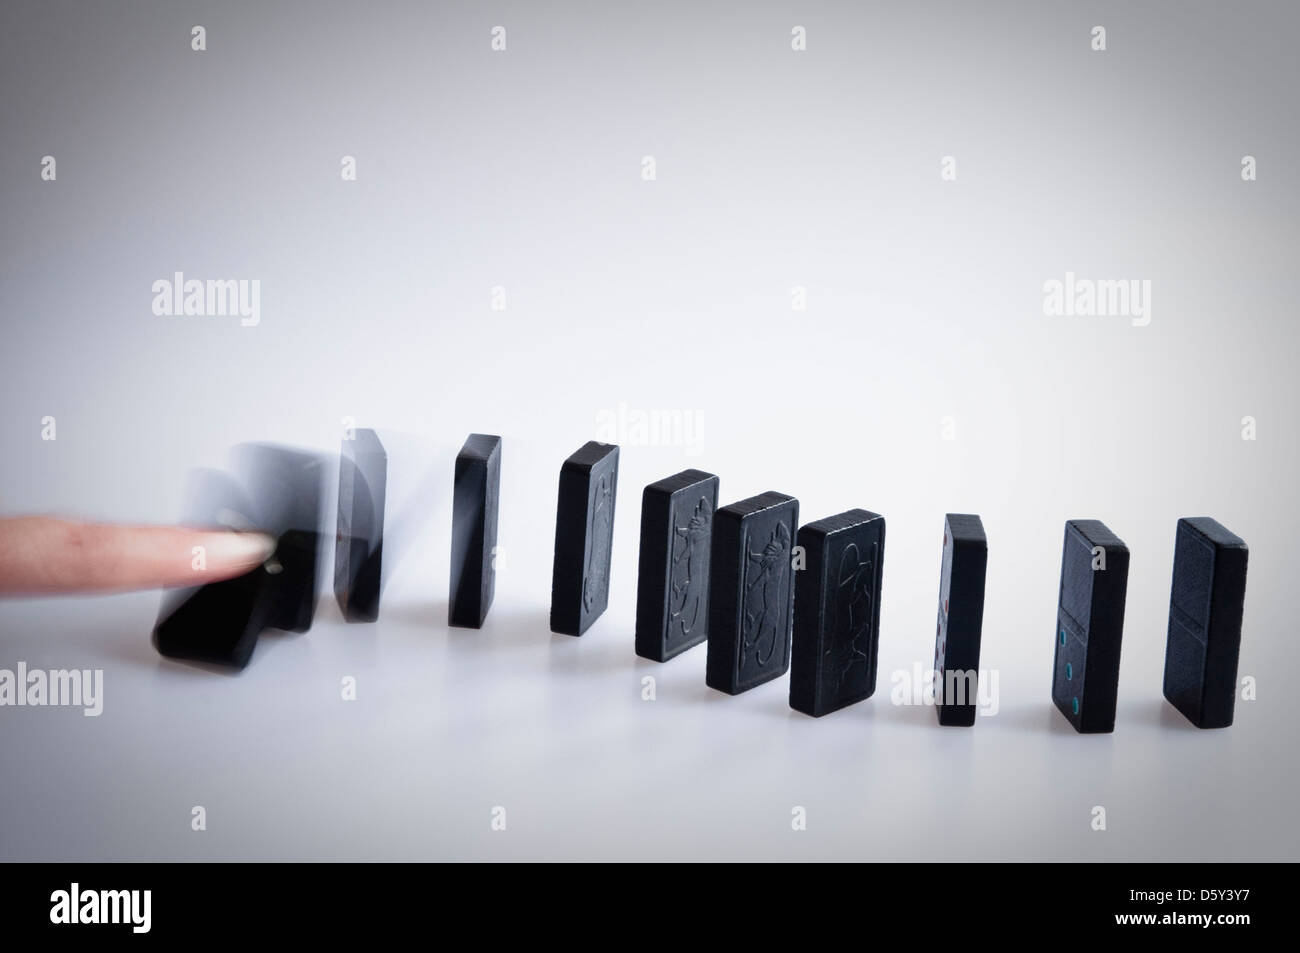 Dominoes falling - finger pushing over the first domino and showing motion blur as it falls. - Stock Image